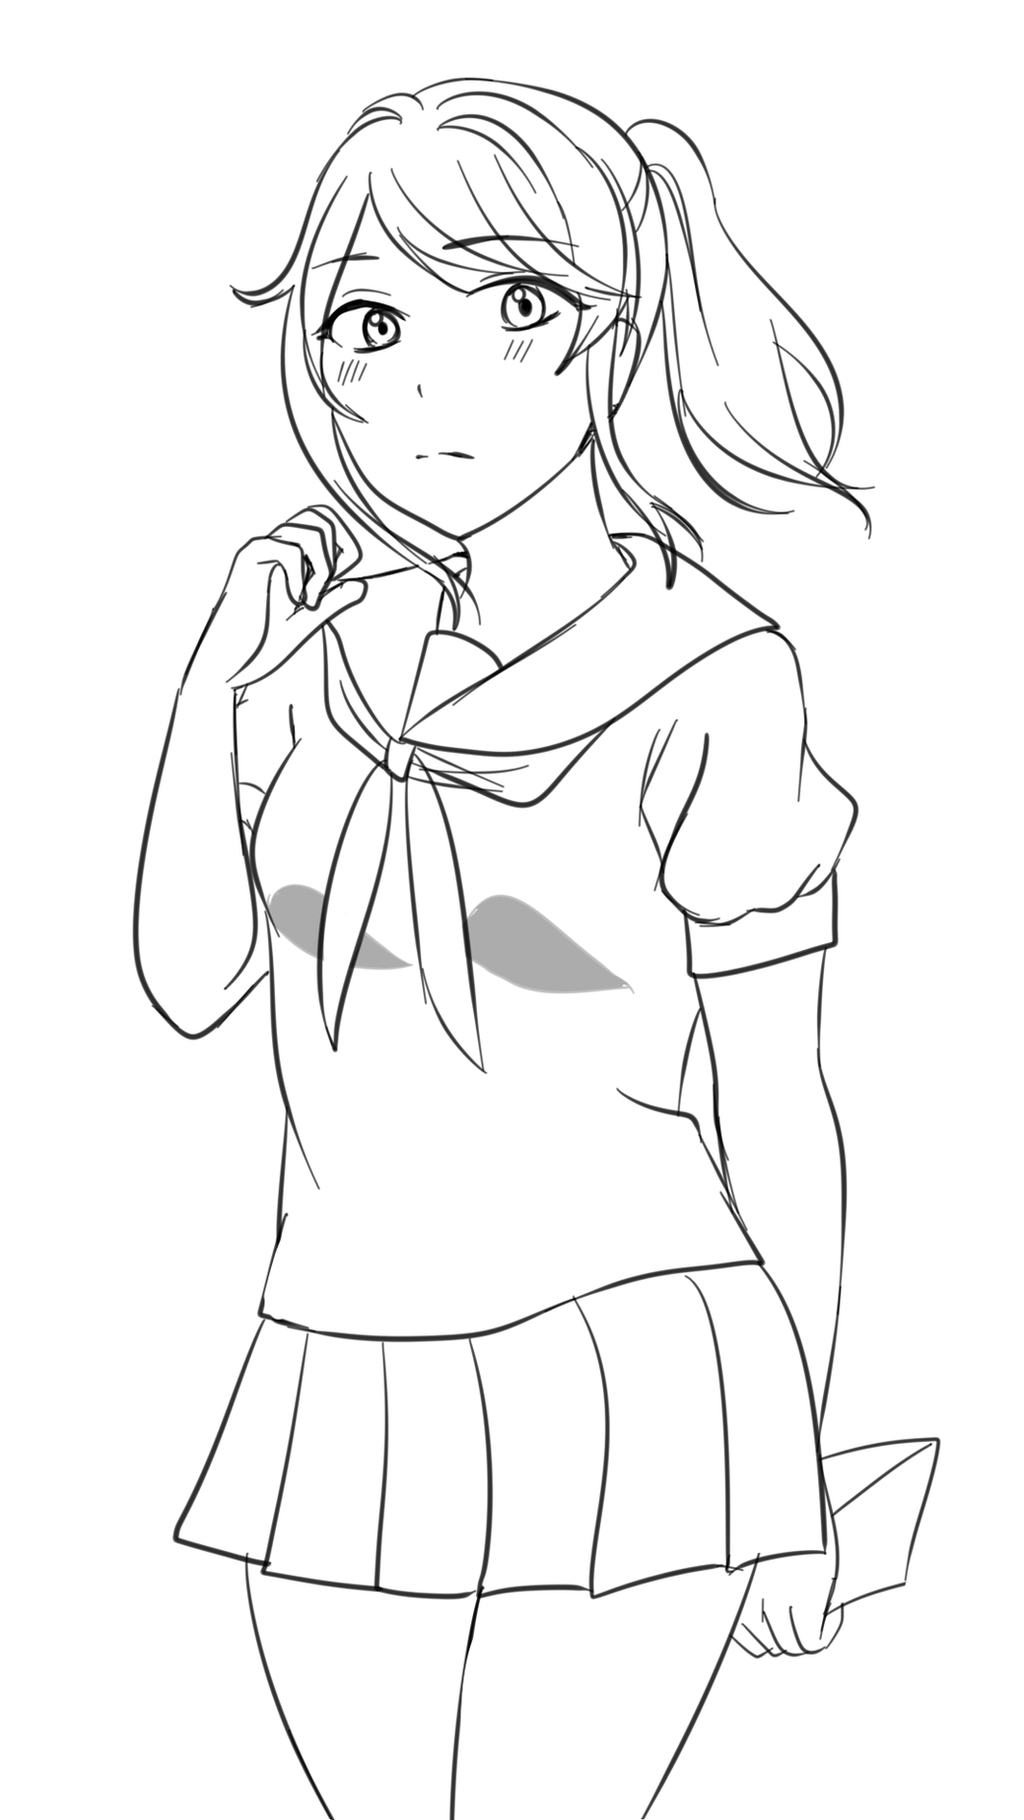 Ayano aishi wip by oreosampai on deviantart for Yandere simulator coloring pages